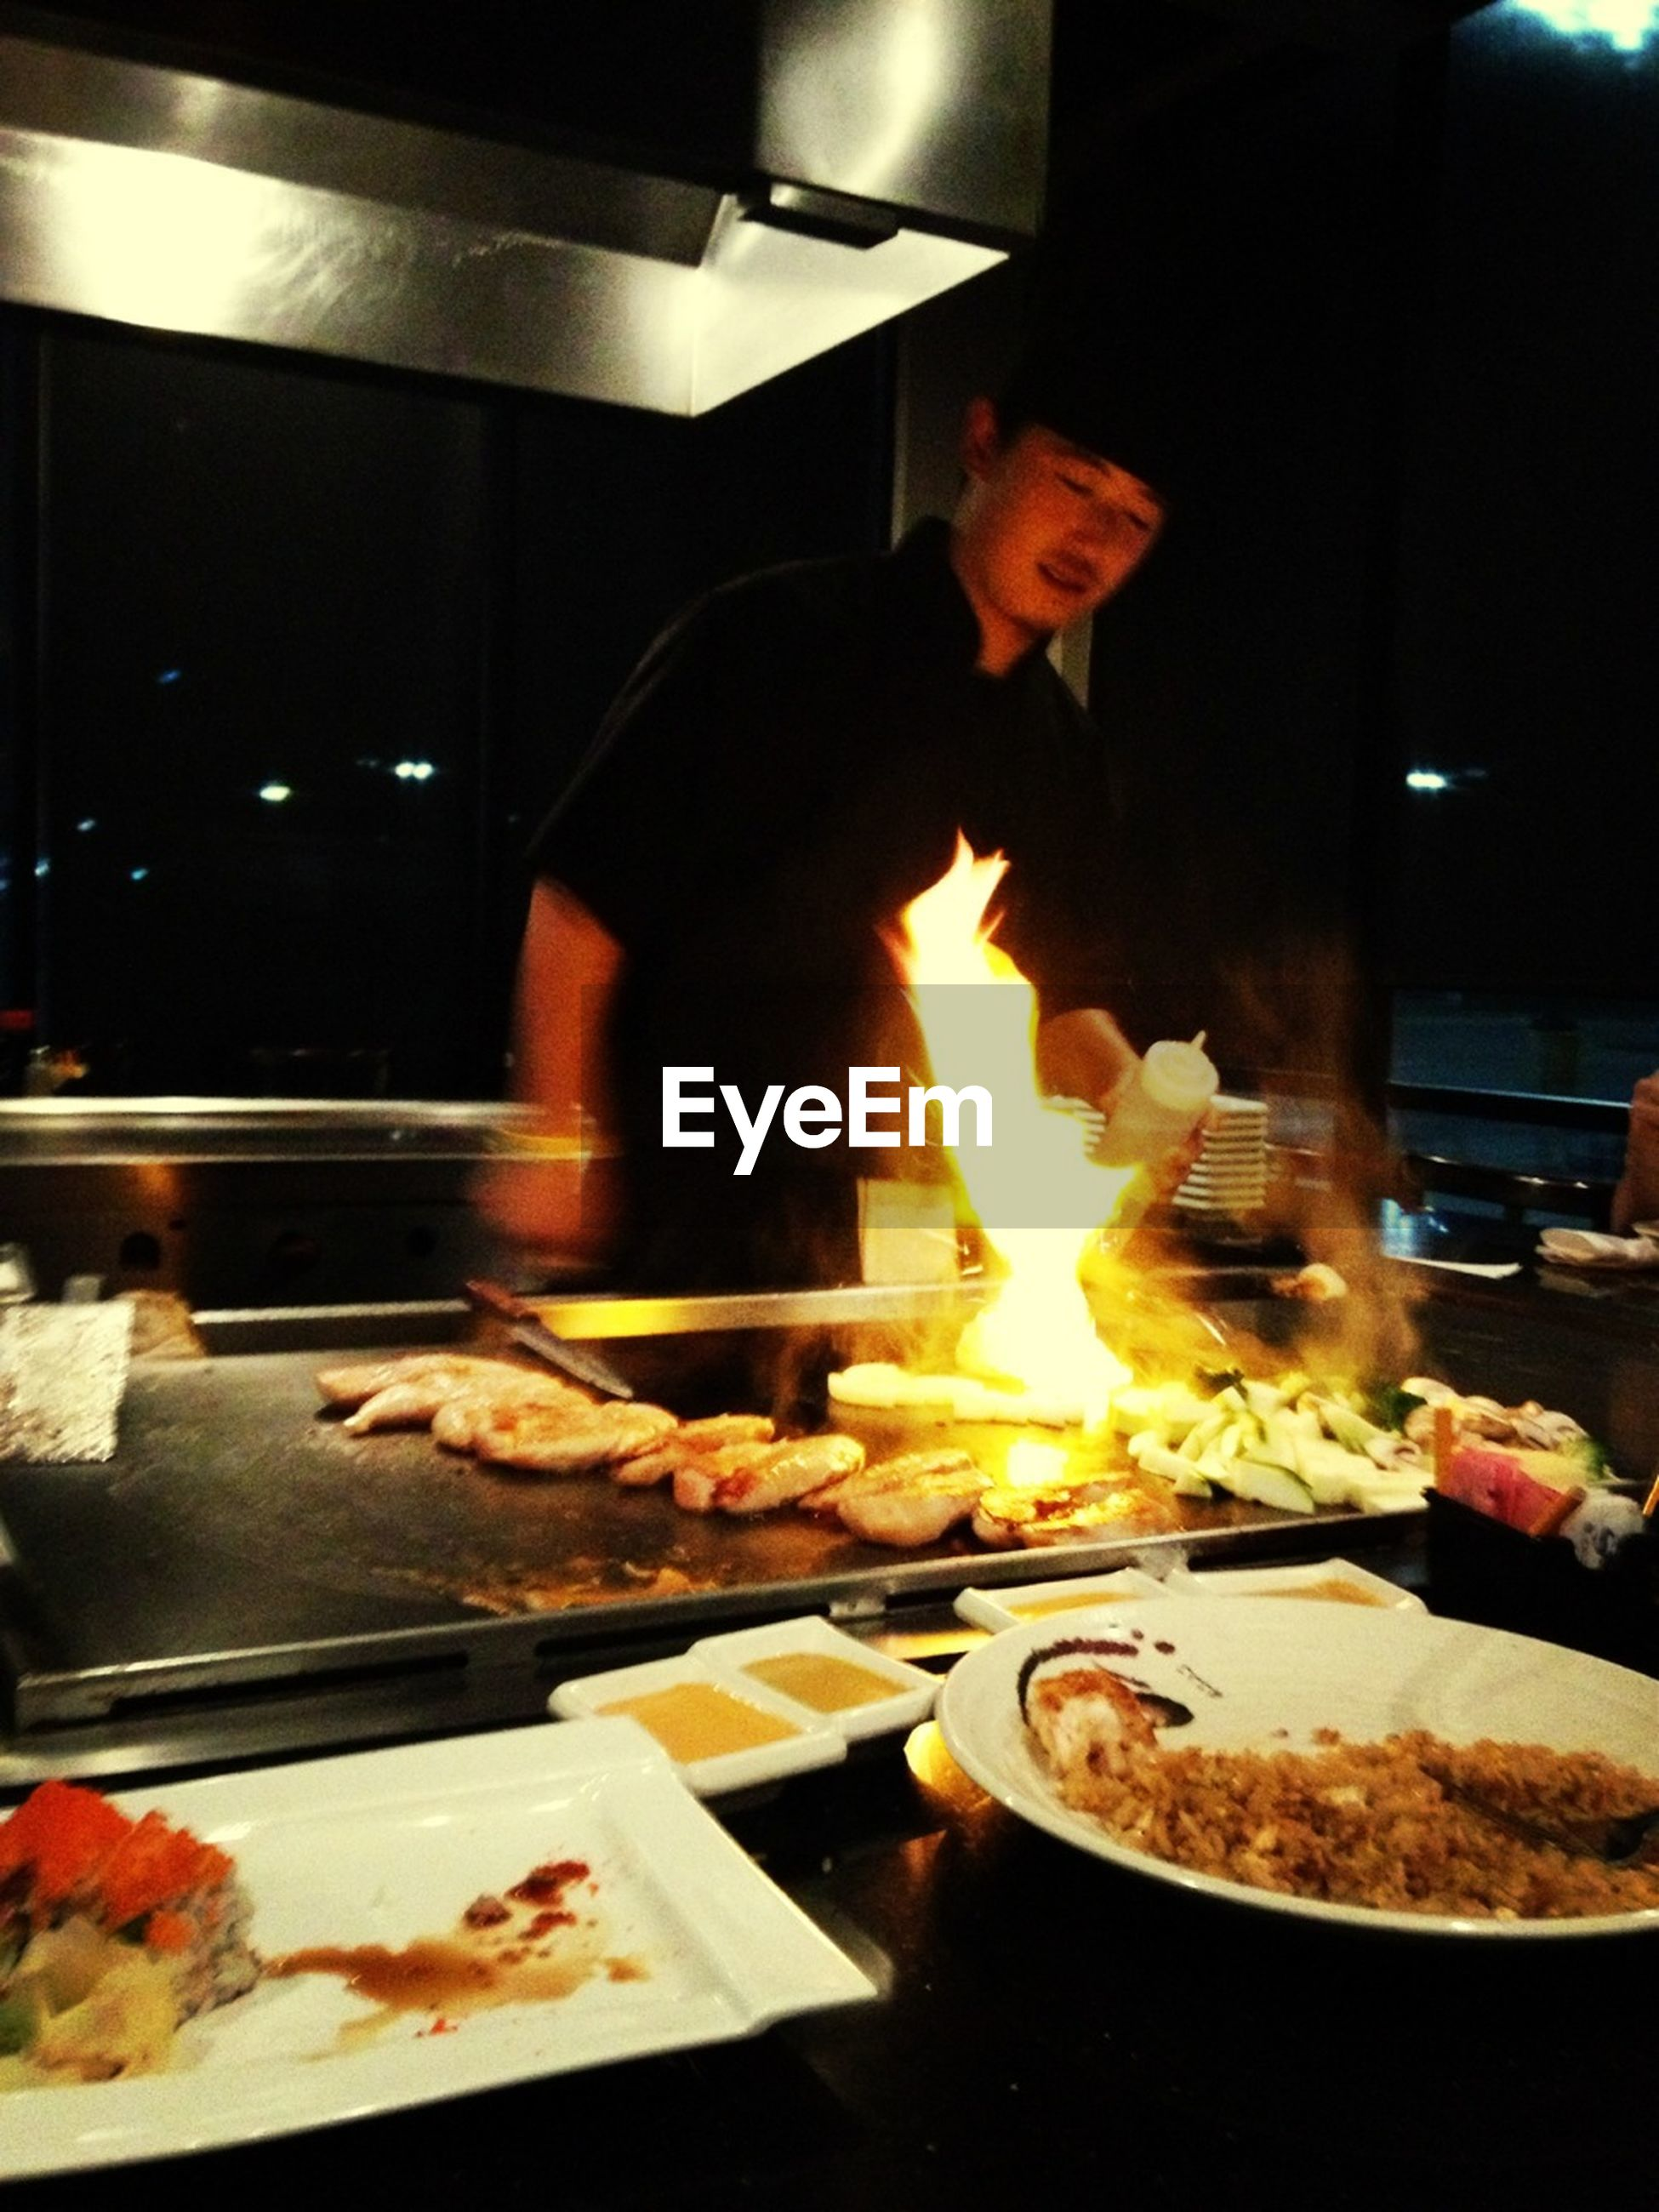 food and drink, food, indoors, freshness, preparation, lifestyles, heat - temperature, preparing food, meat, cooking, men, flame, restaurant, ready-to-eat, healthy eating, meal, person, table